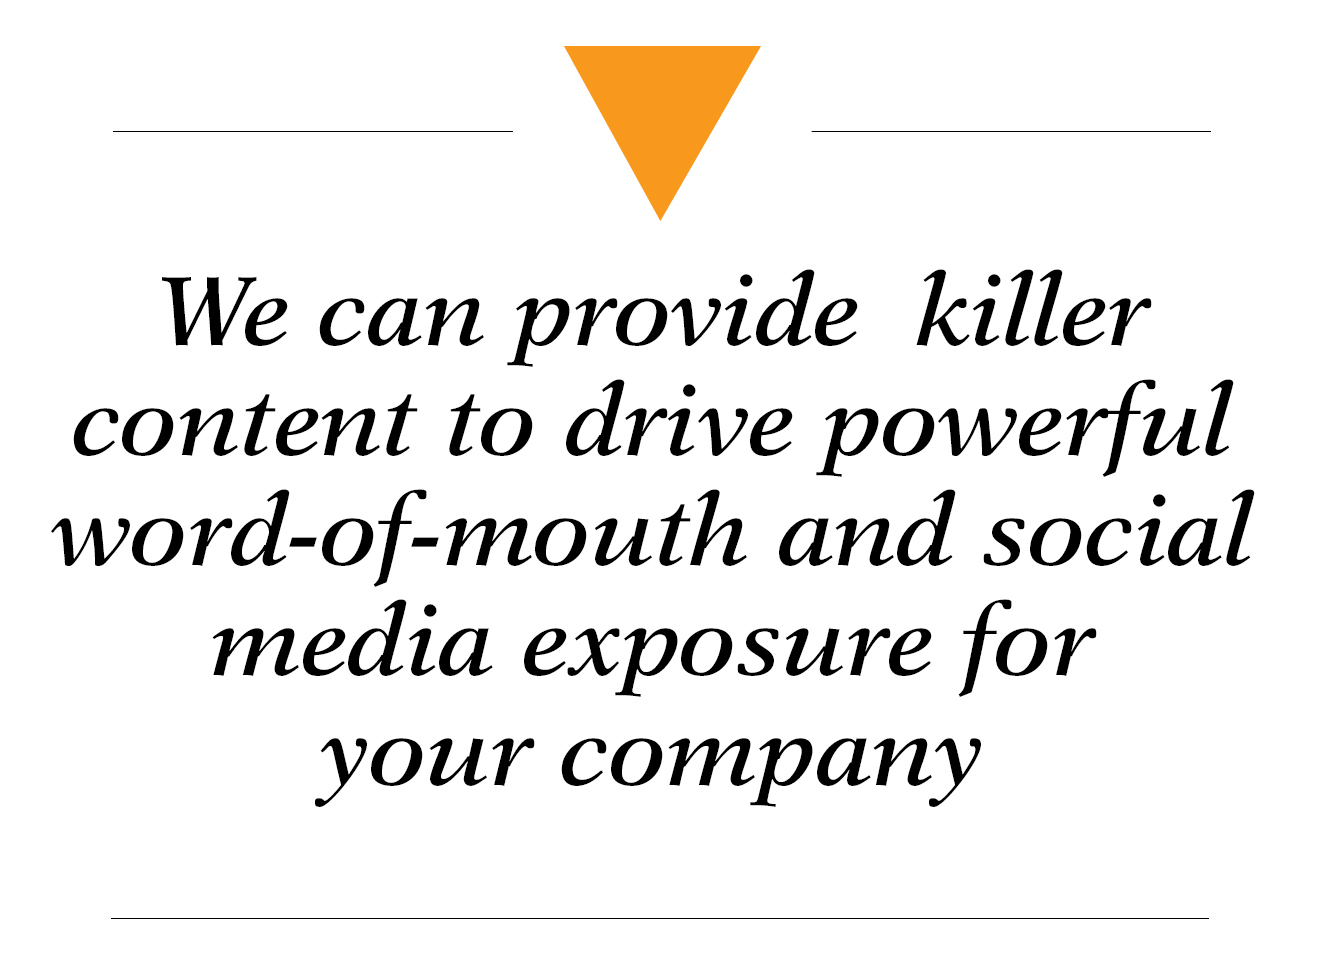 We can provide killer content to drive powerful word-of-mouth and social media exposure for your company - content marketing